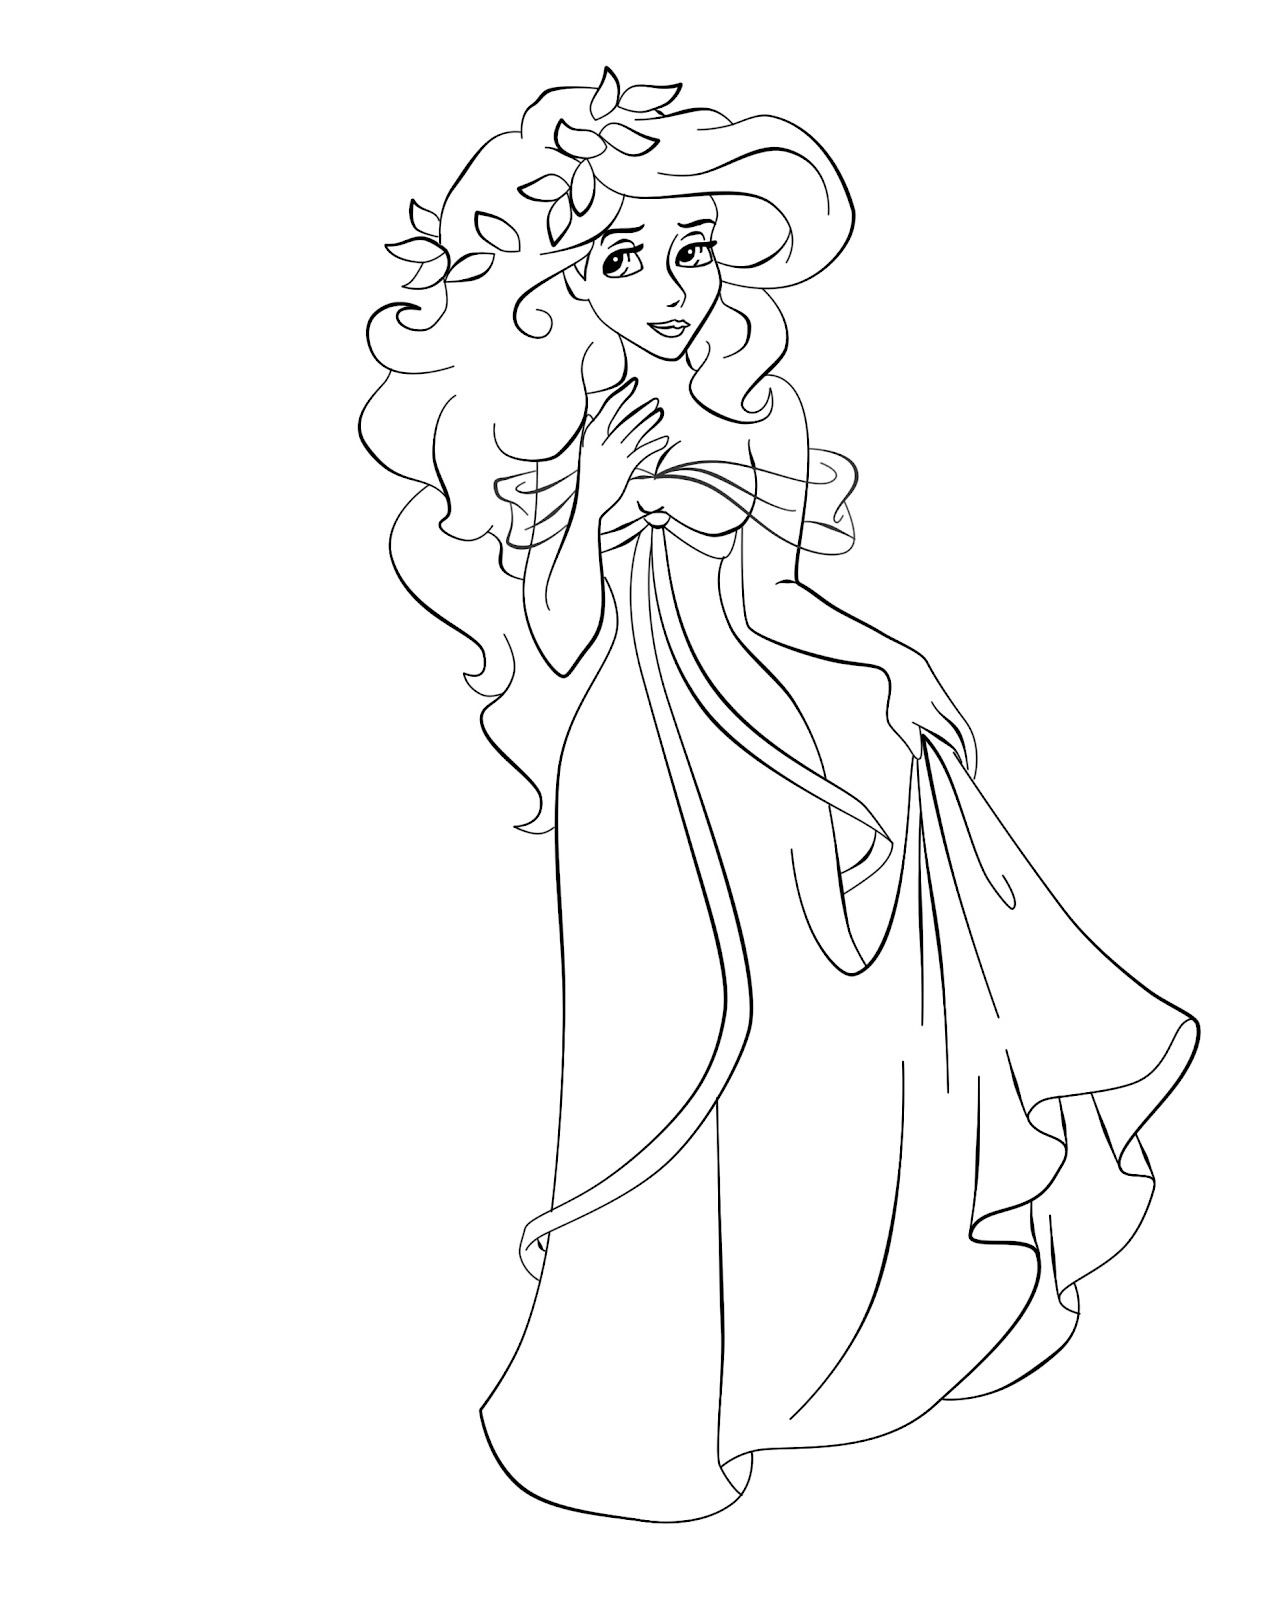 Disney Princess Giselle Coloring Page